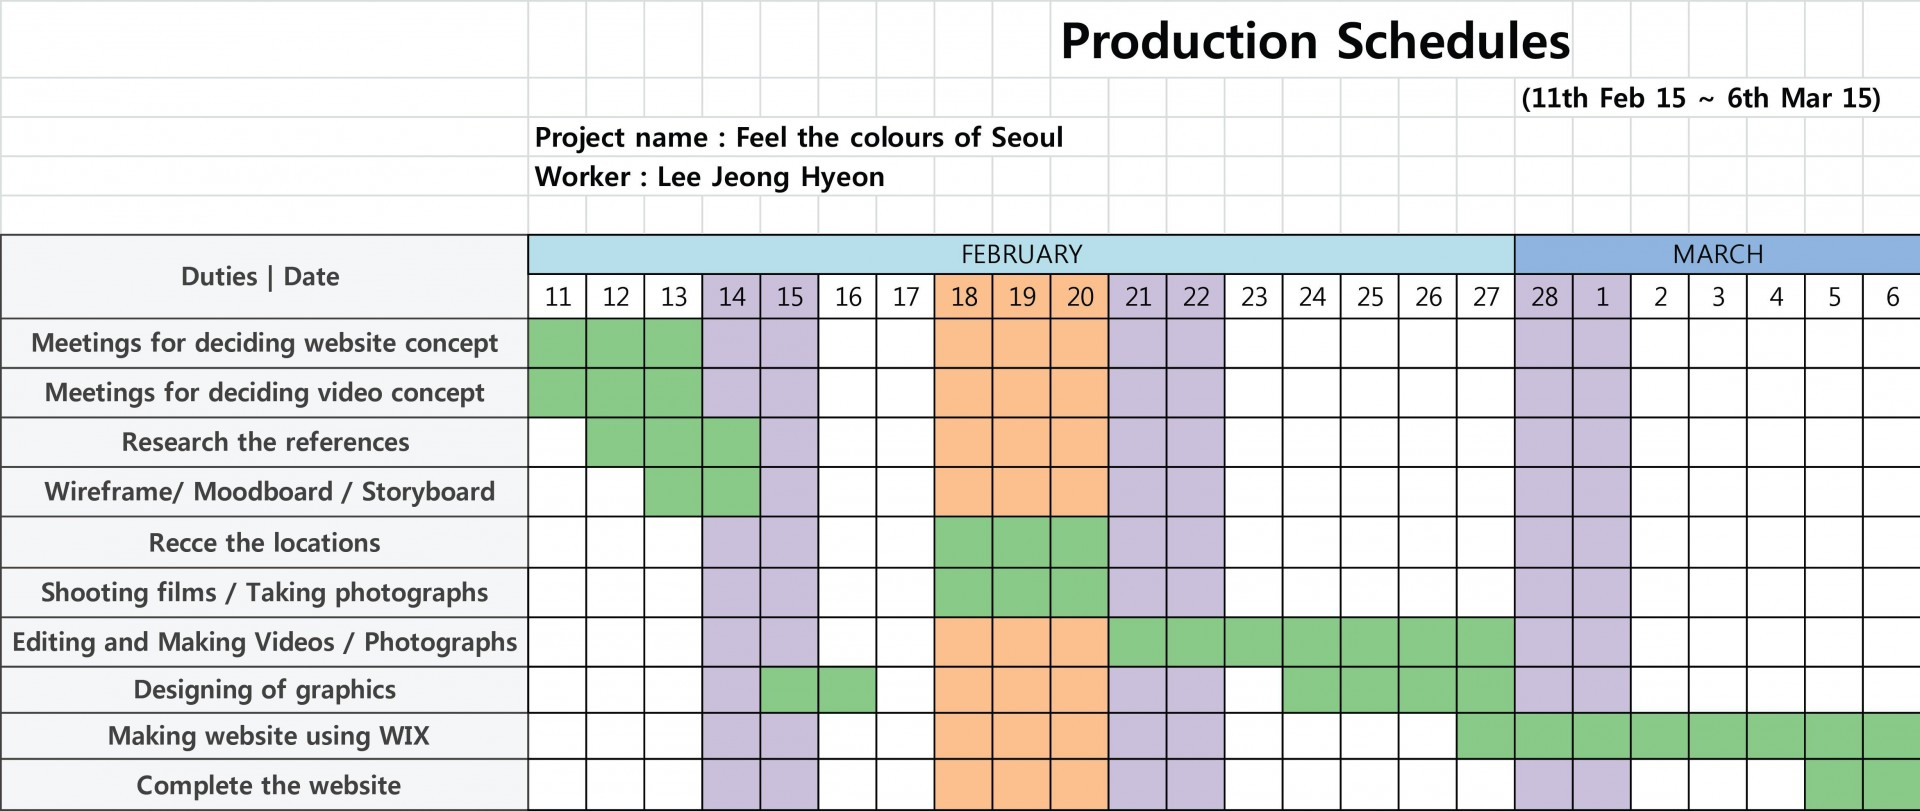 003 Formidable Production Schedule Template Excel Image  Planning Sheet Master1920